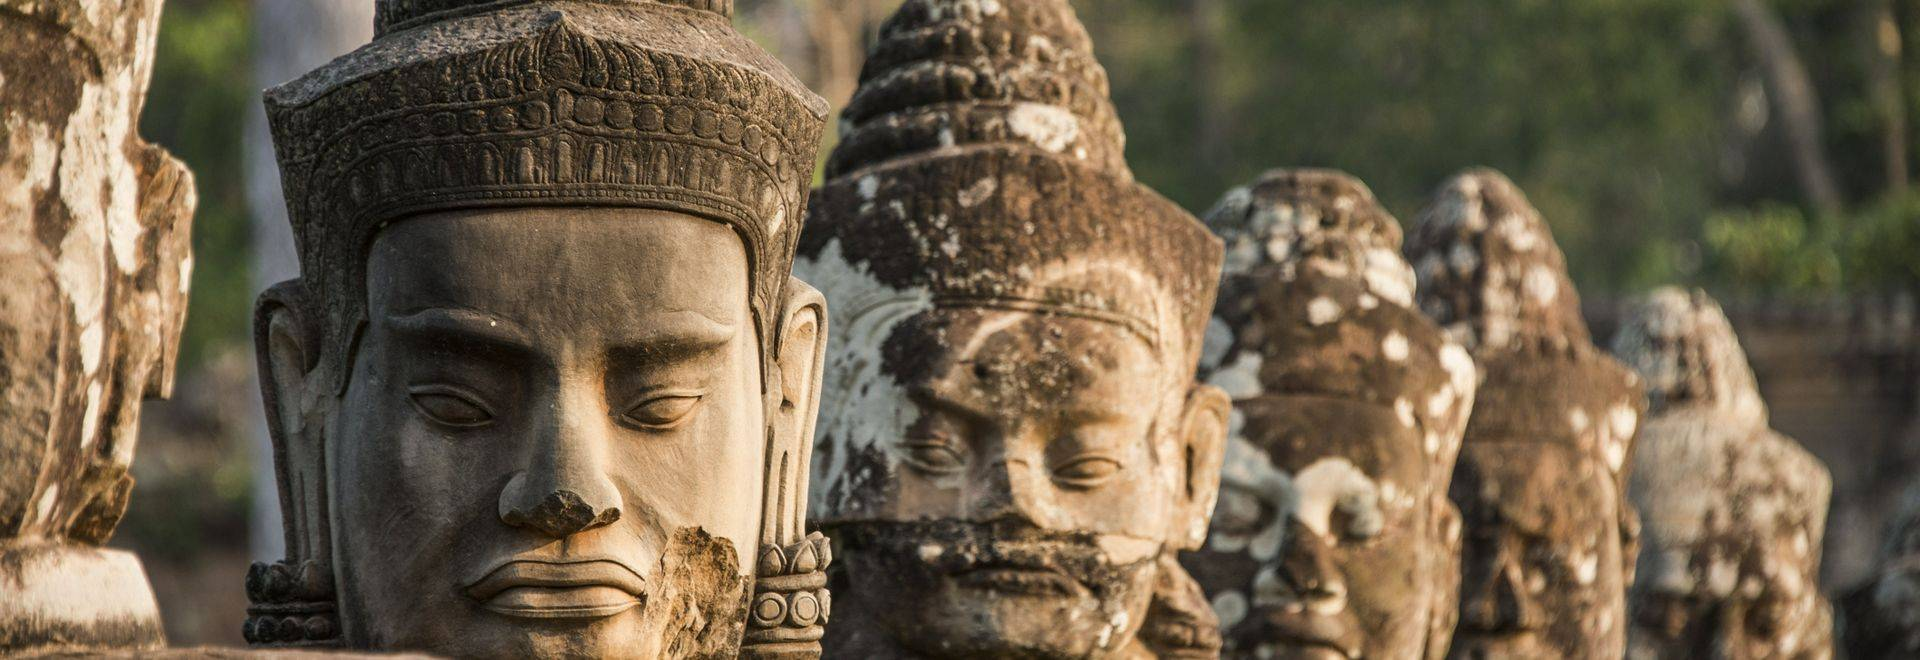 Carved figures on bridge to South Gate of Angkor Thom Temple in Angkor Archaeological Park, Cambodia.